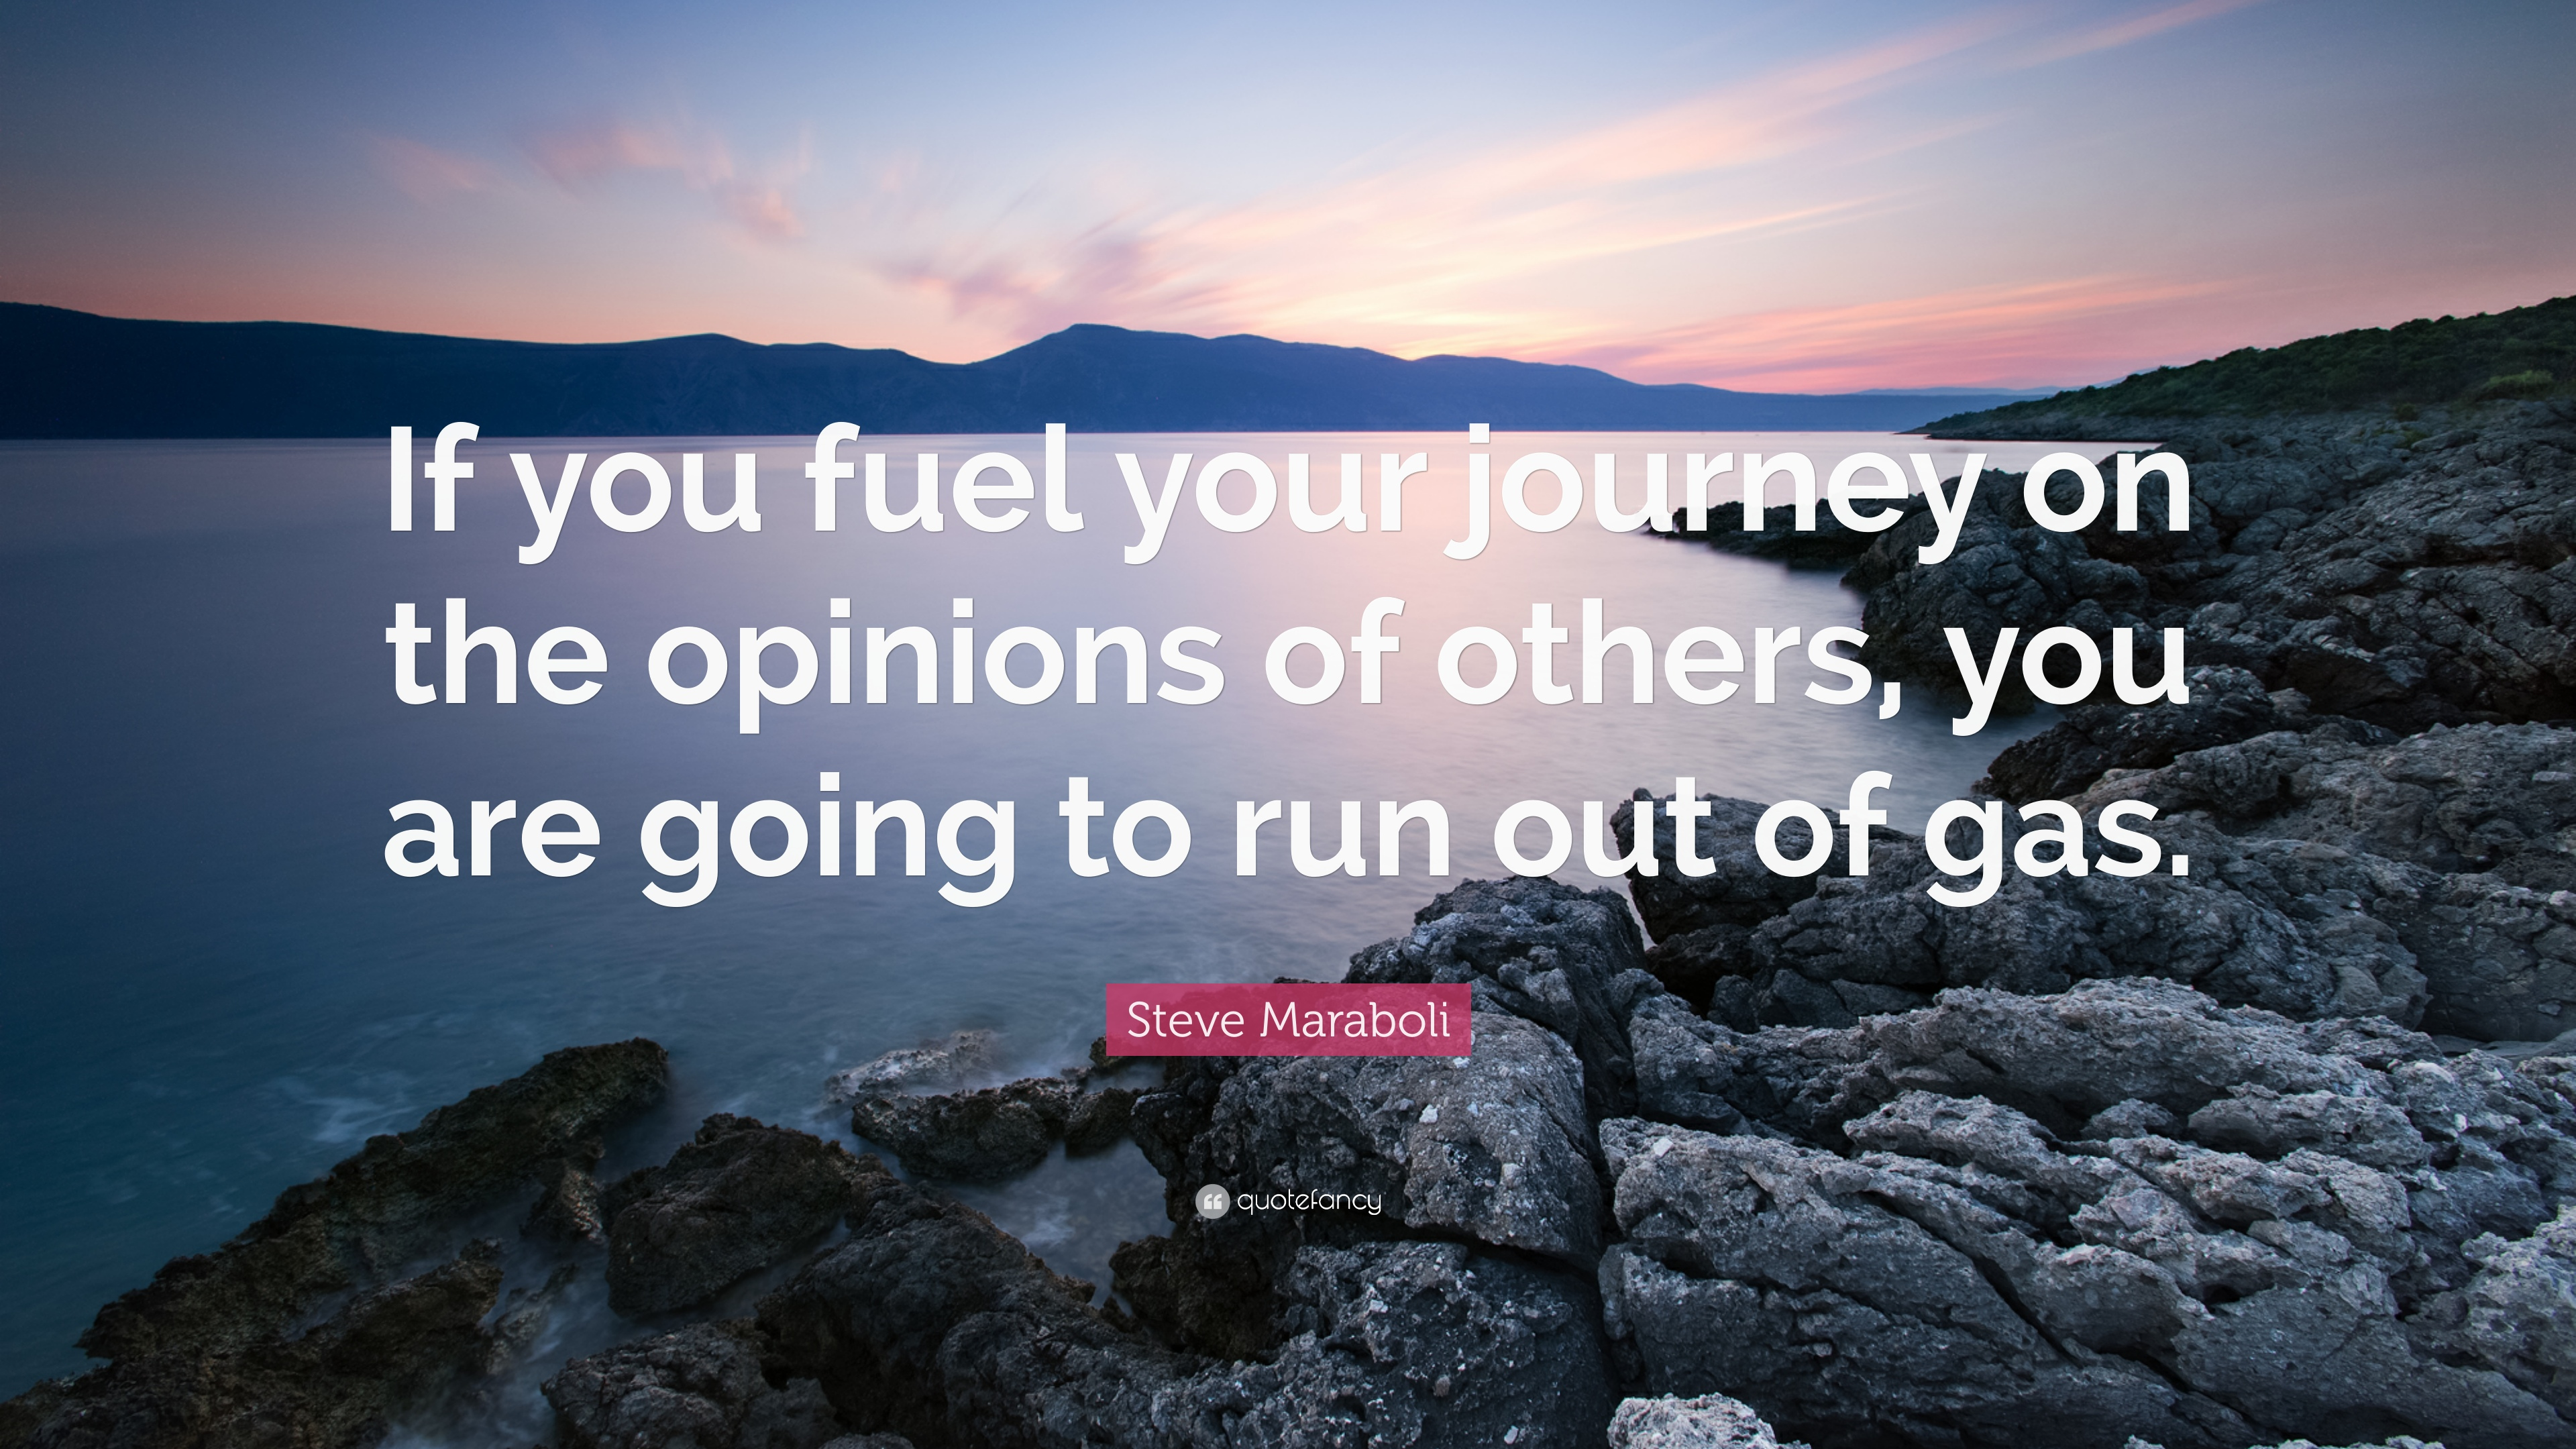 Steve Maraboli Quote If You Fuel Your Journey On The Opinions Of